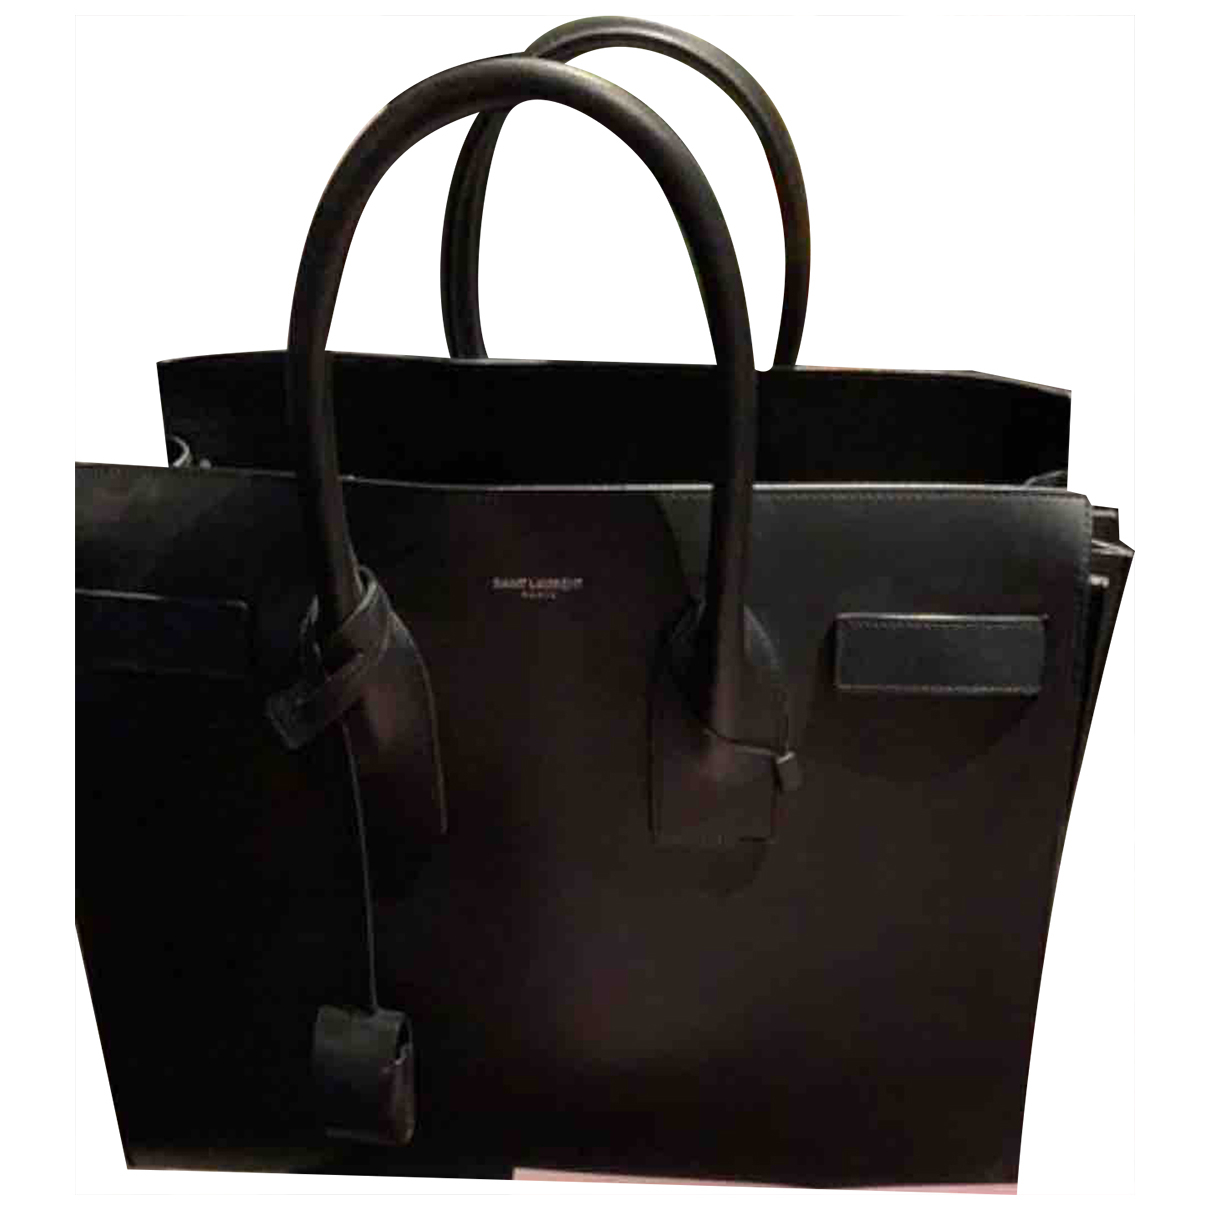 Saint Laurent Sac de Jour Black Leather handbag for Women N